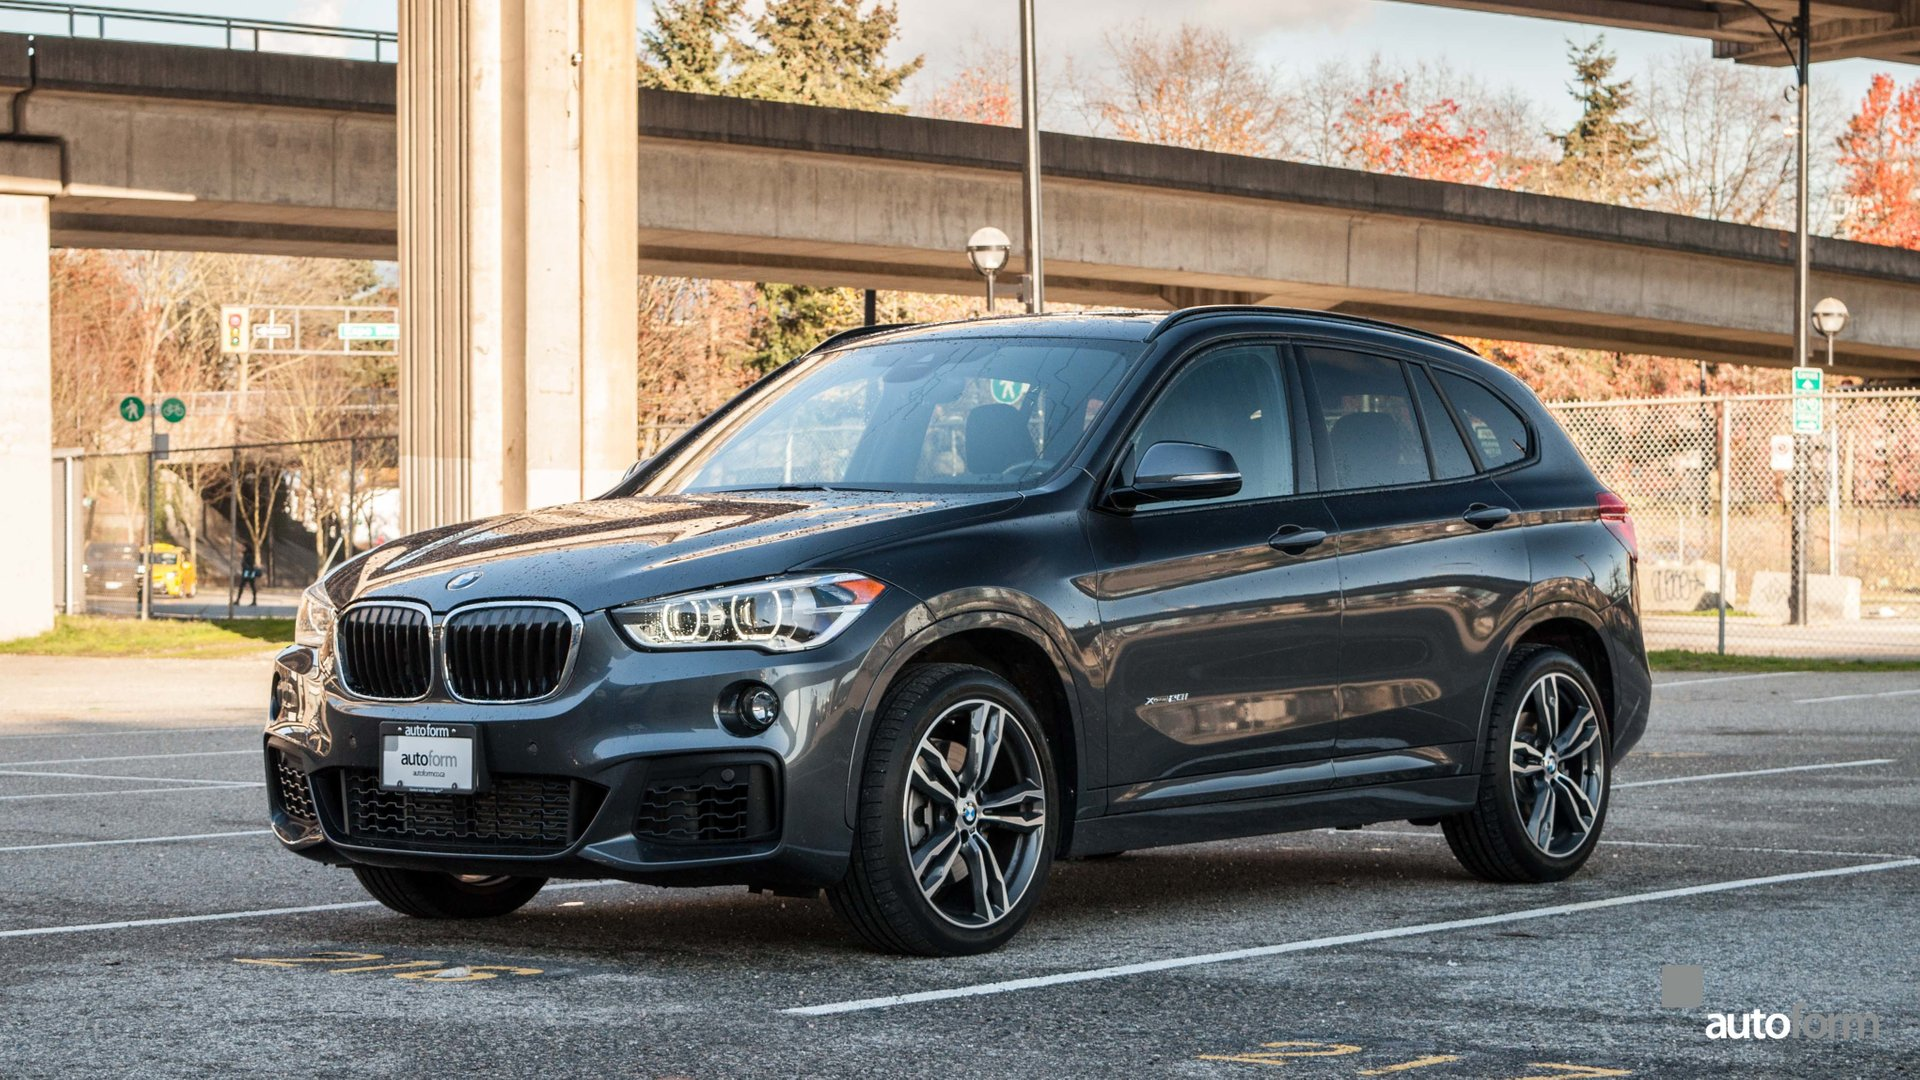 2017 bmw x1 xdrive28i msport driver assist head up display